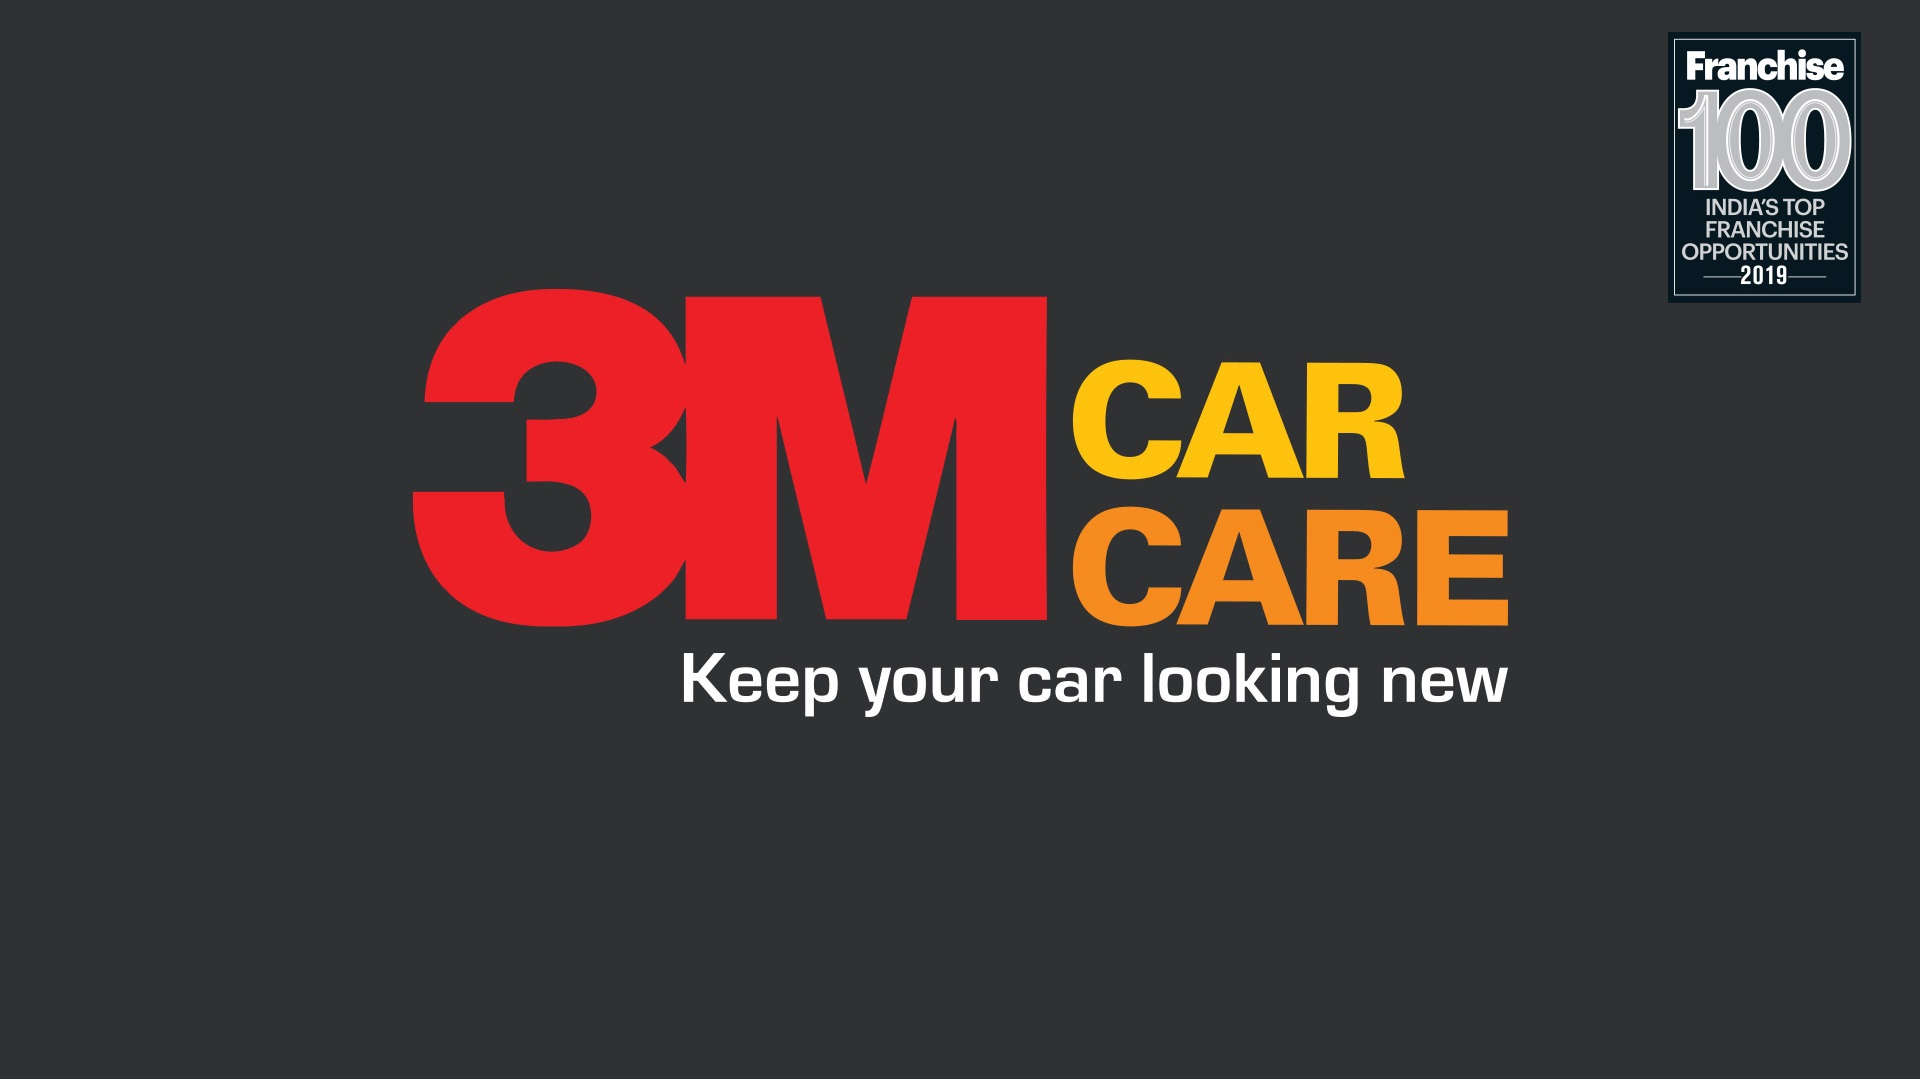 3M Car Care Delivers What it Promises, so it Stands Tall in the Top Franchise 100 Brands List